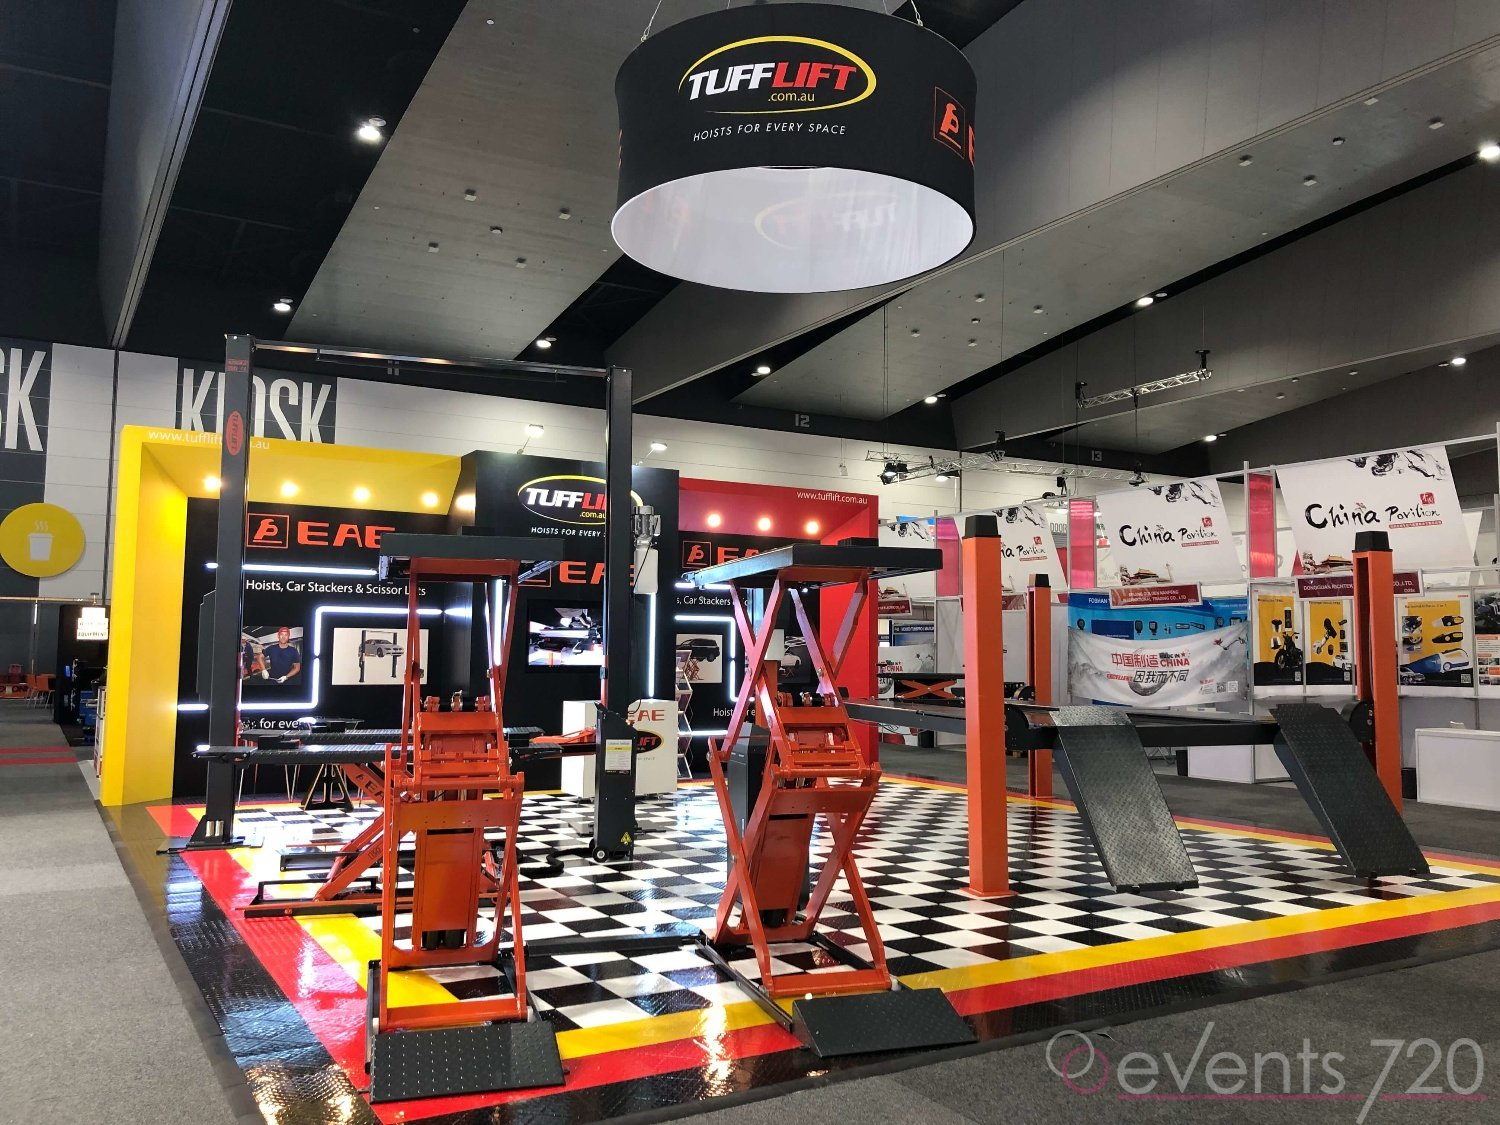 Tufflift Exhibition Stand